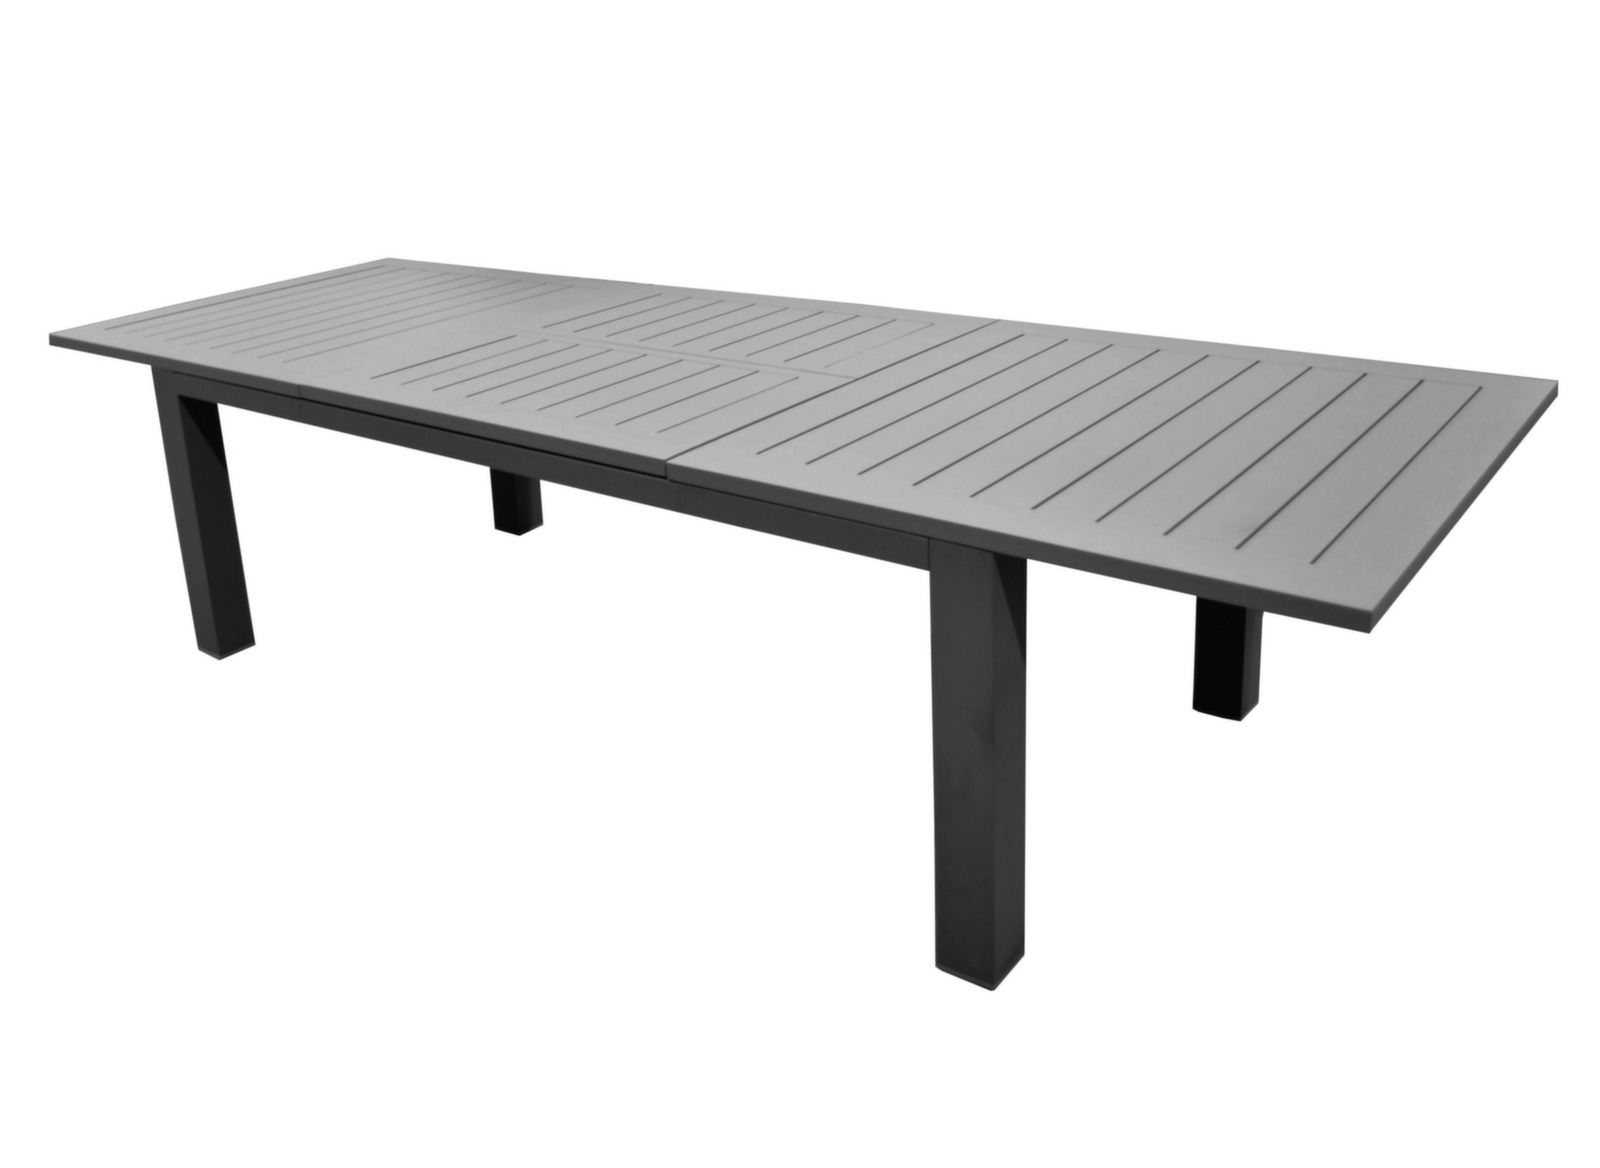 Table de jardin aluminium 12 places aurore oc o proloisirs for Table ronde rallonge 8 a 10 personnes